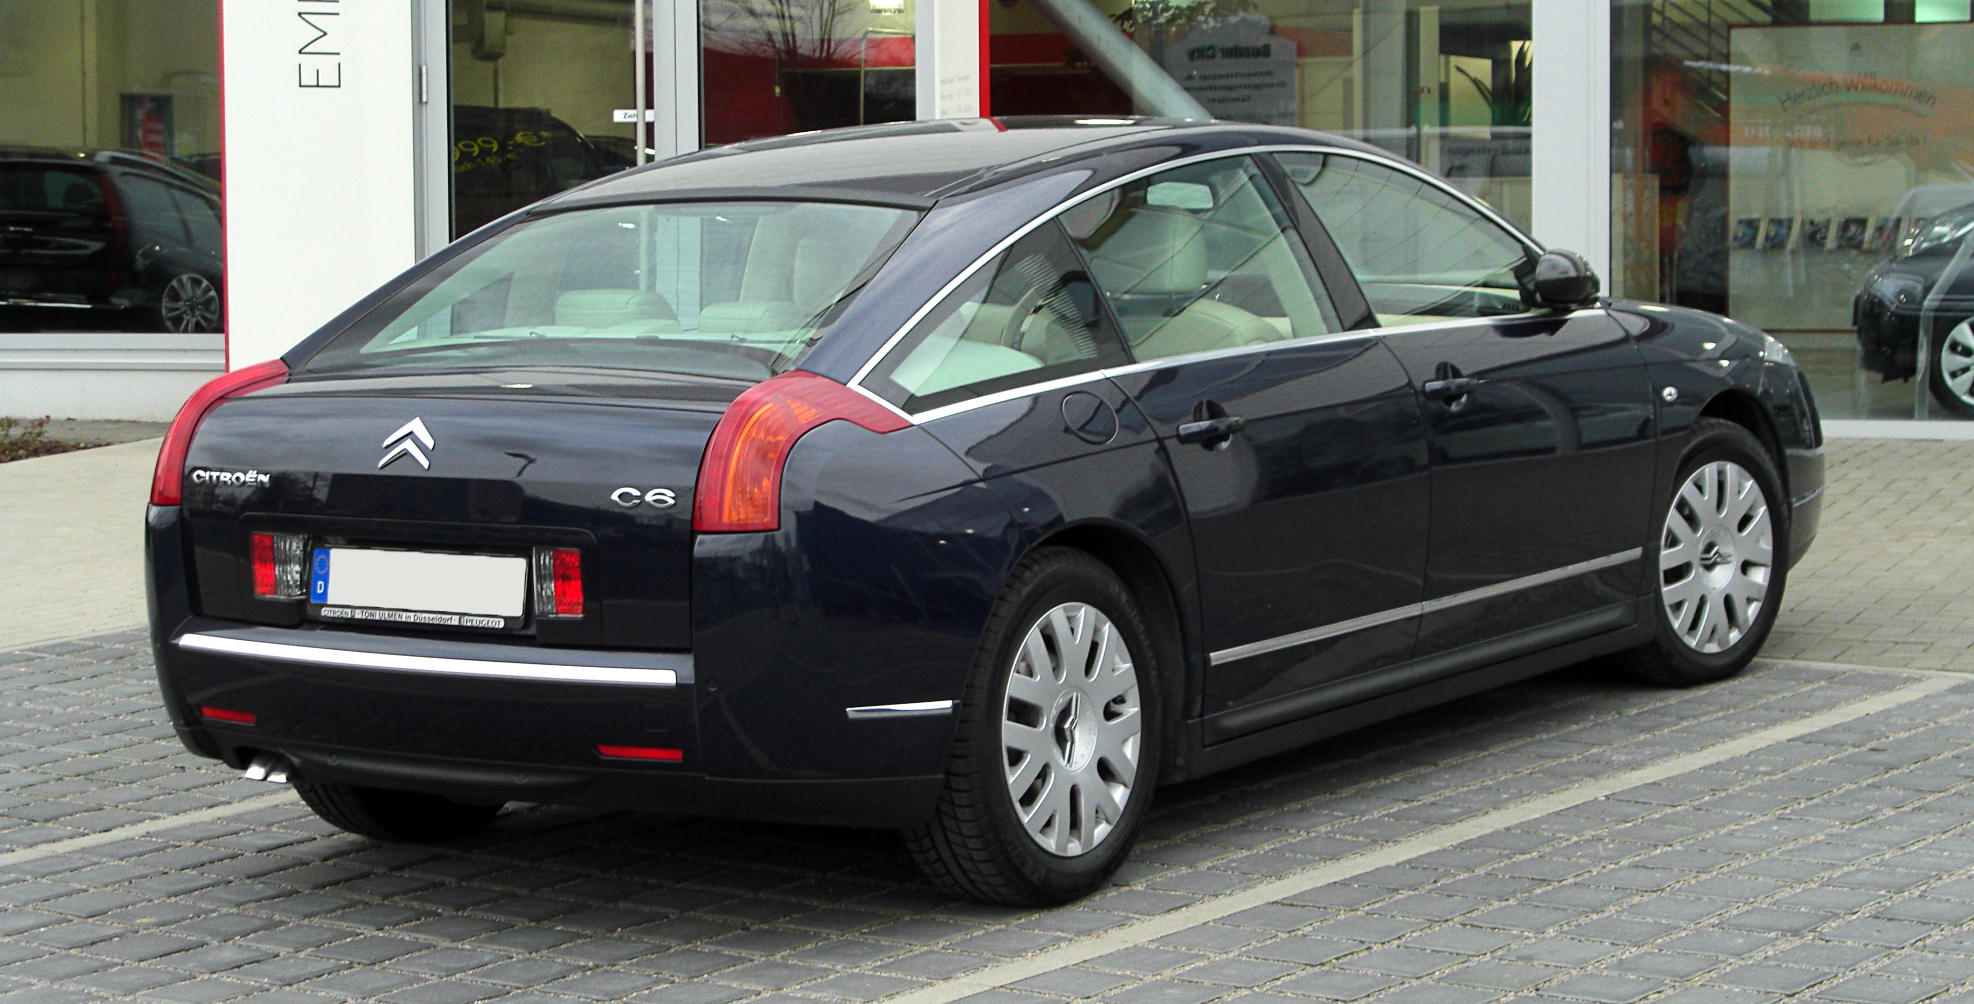 citroen c6 seriess #4